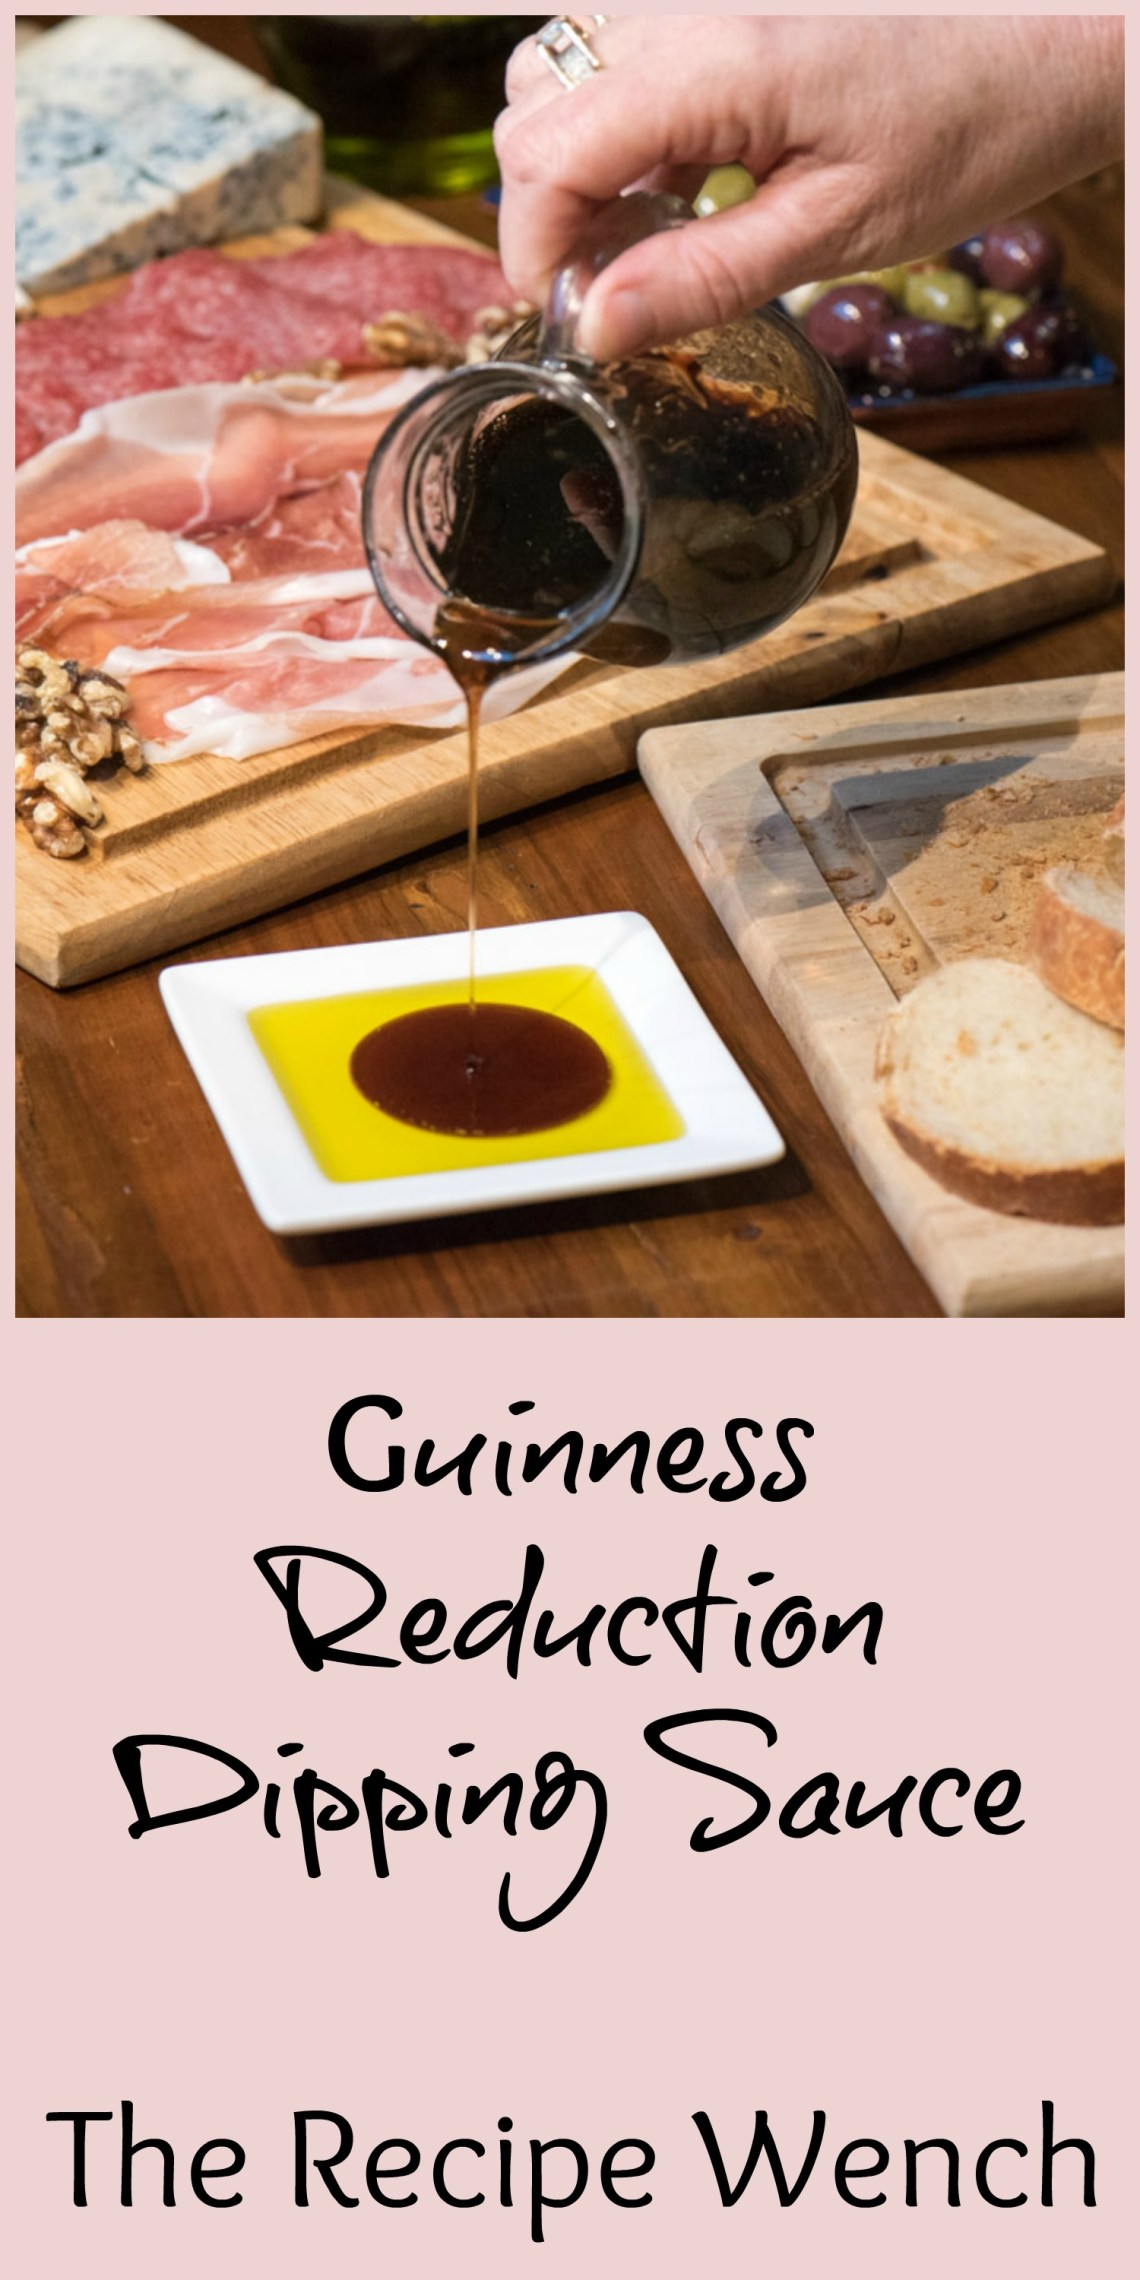 Life's simple pleasures - olive oil drizzled with an easy Guinness reduction. The perfect addition to a cheeseboard | The Recipe Wench